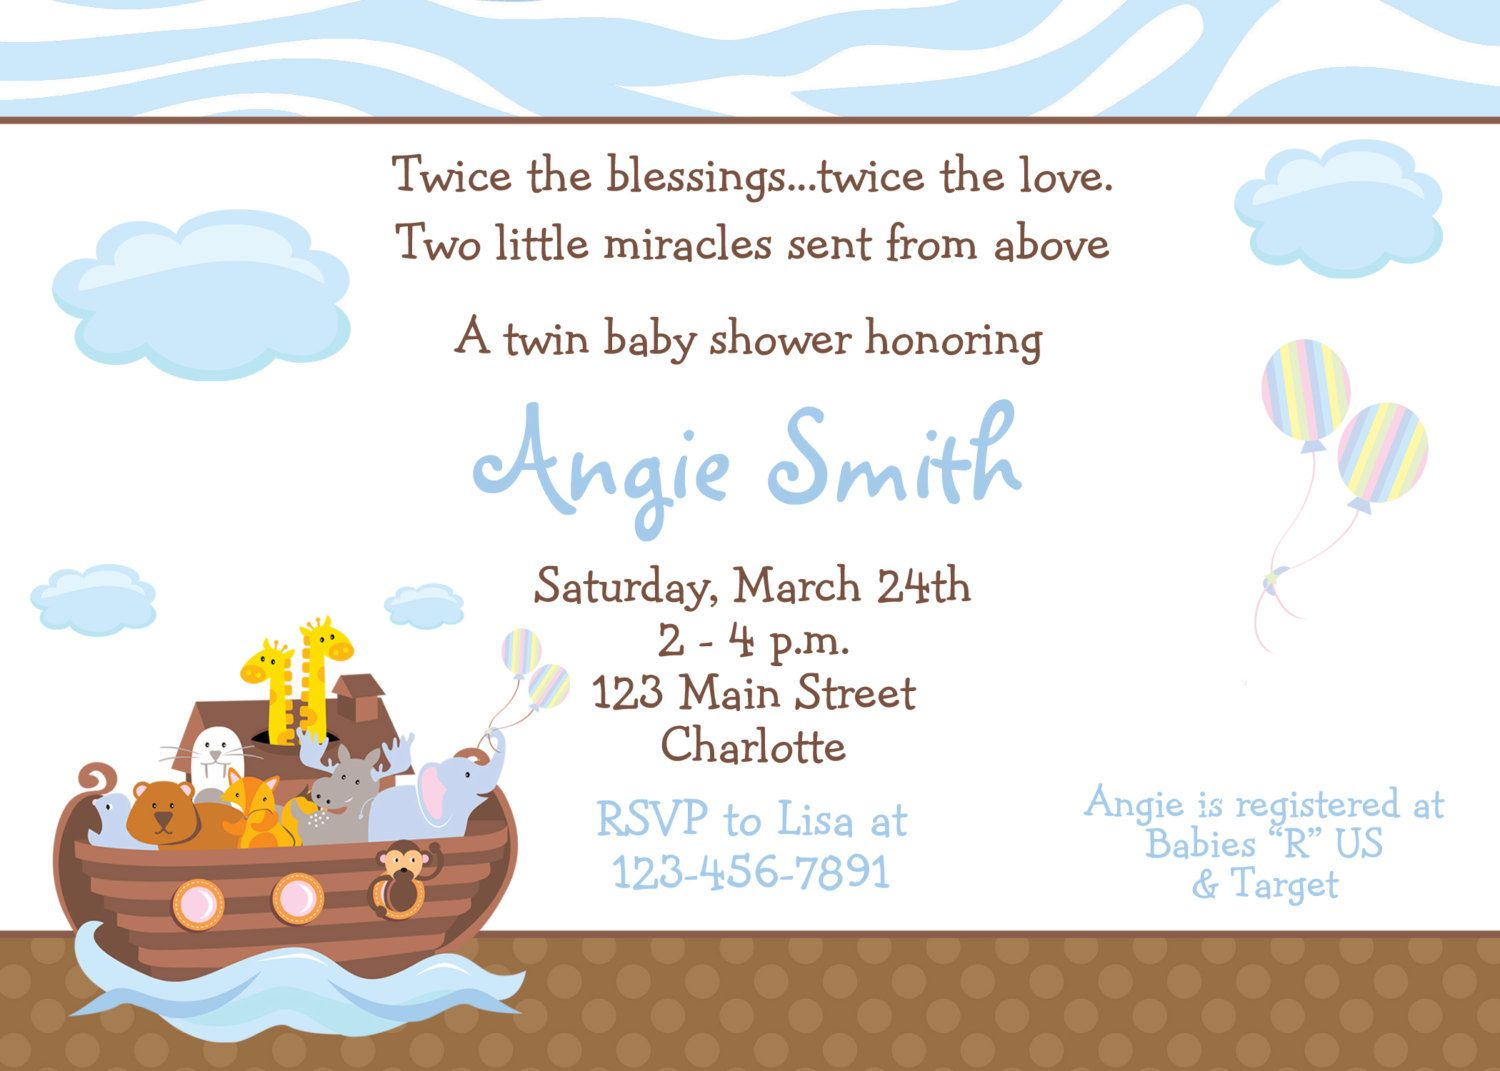 noah's ark baby shower invitation -twins baby shower invitation, Baby shower invitations